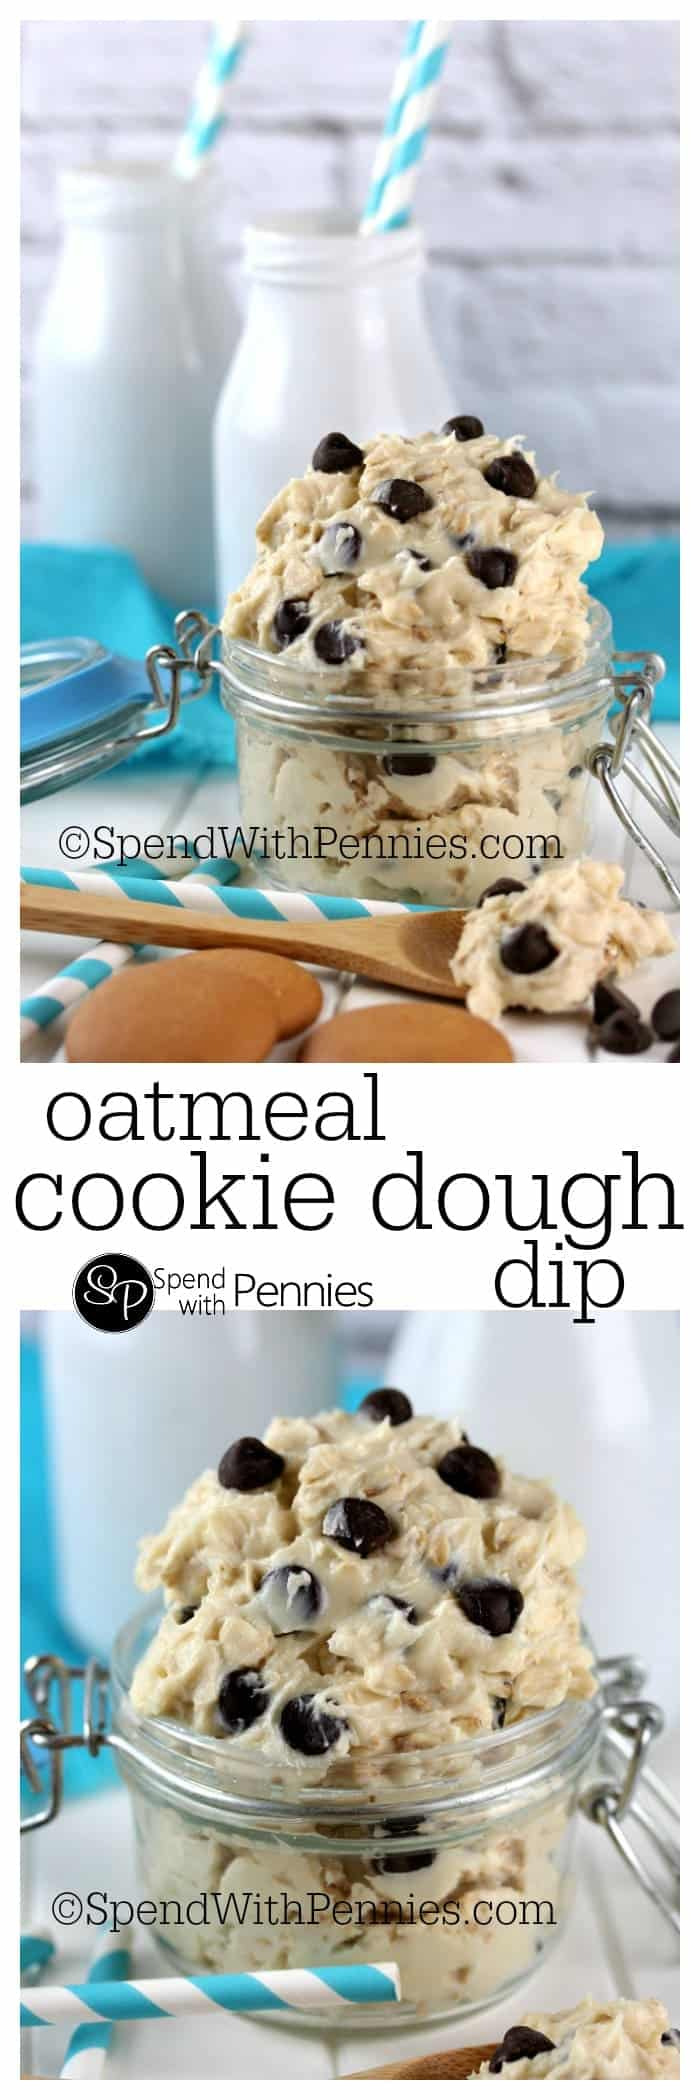 Oatmeal Cookie Dough Dip (Eggless) - Spend With Pennies